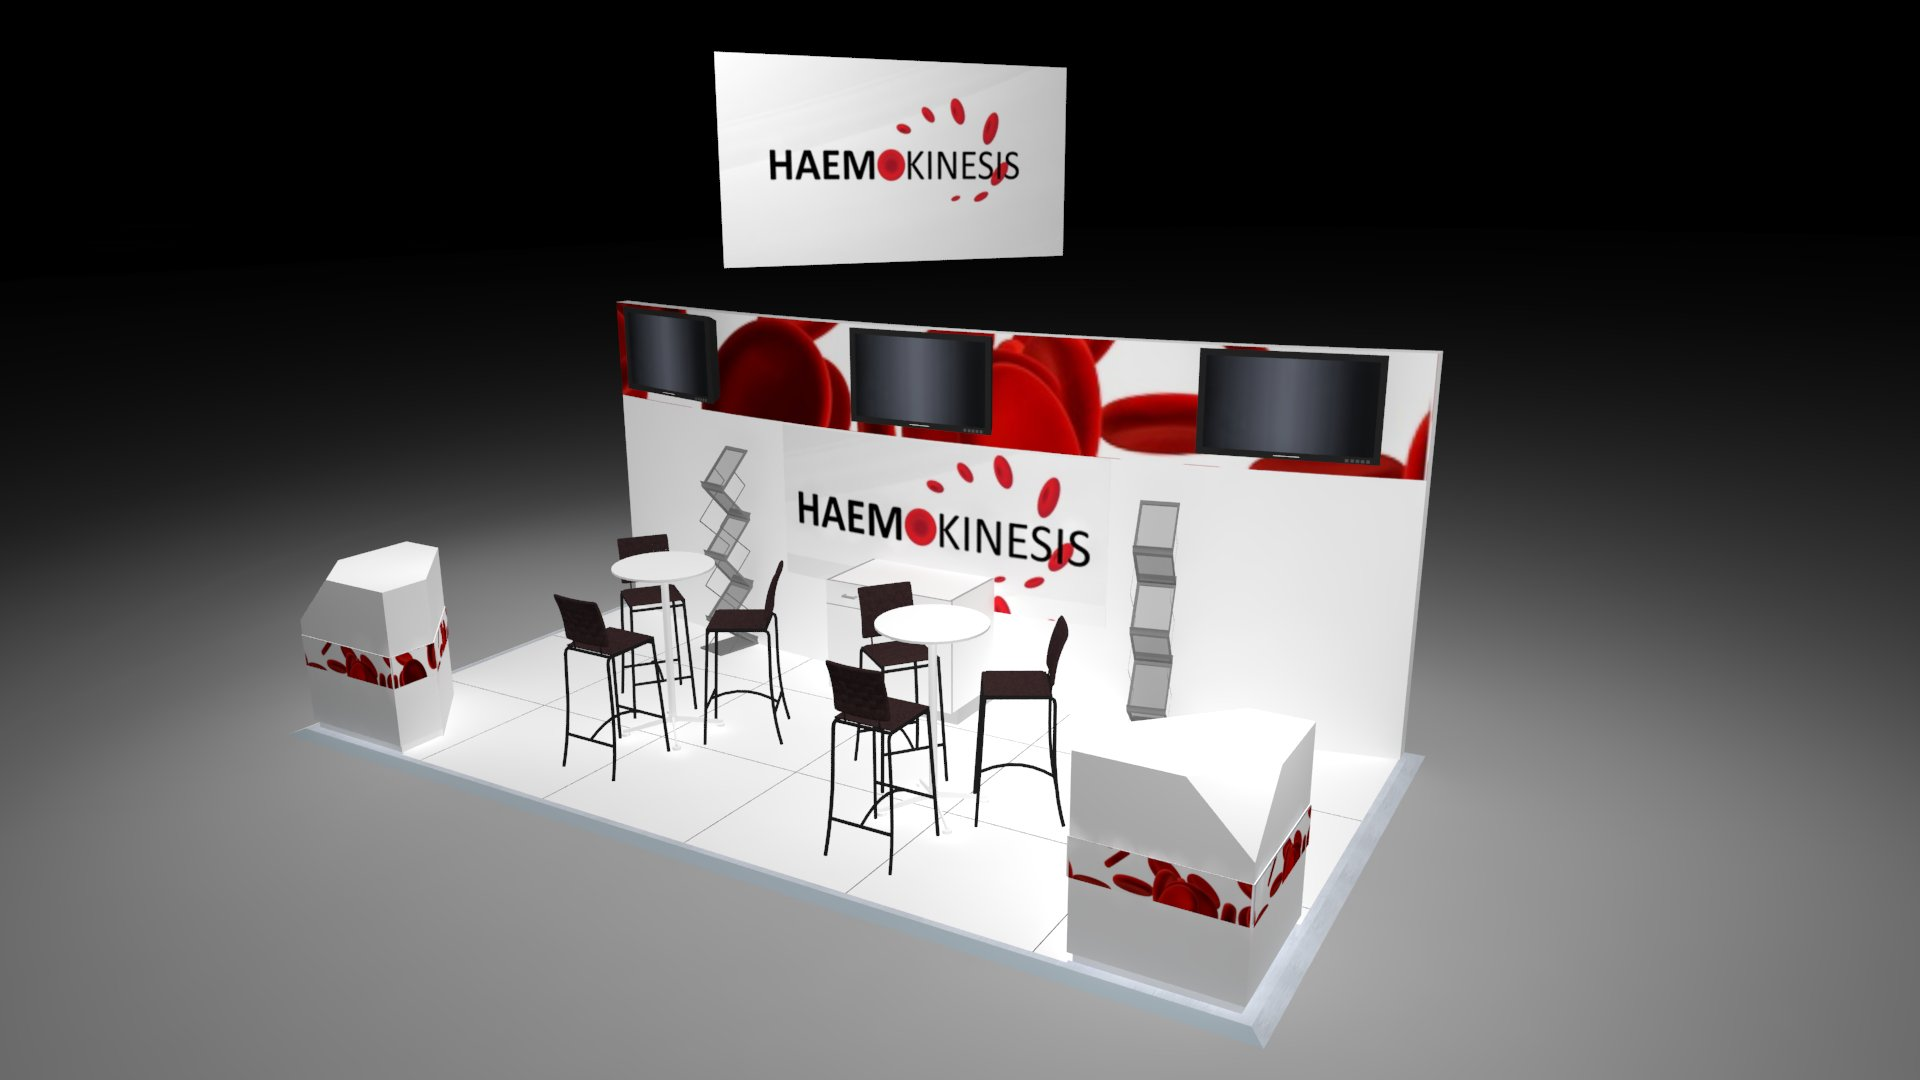 Exhibition Stand Design Concepts : Exhibition stand design concept